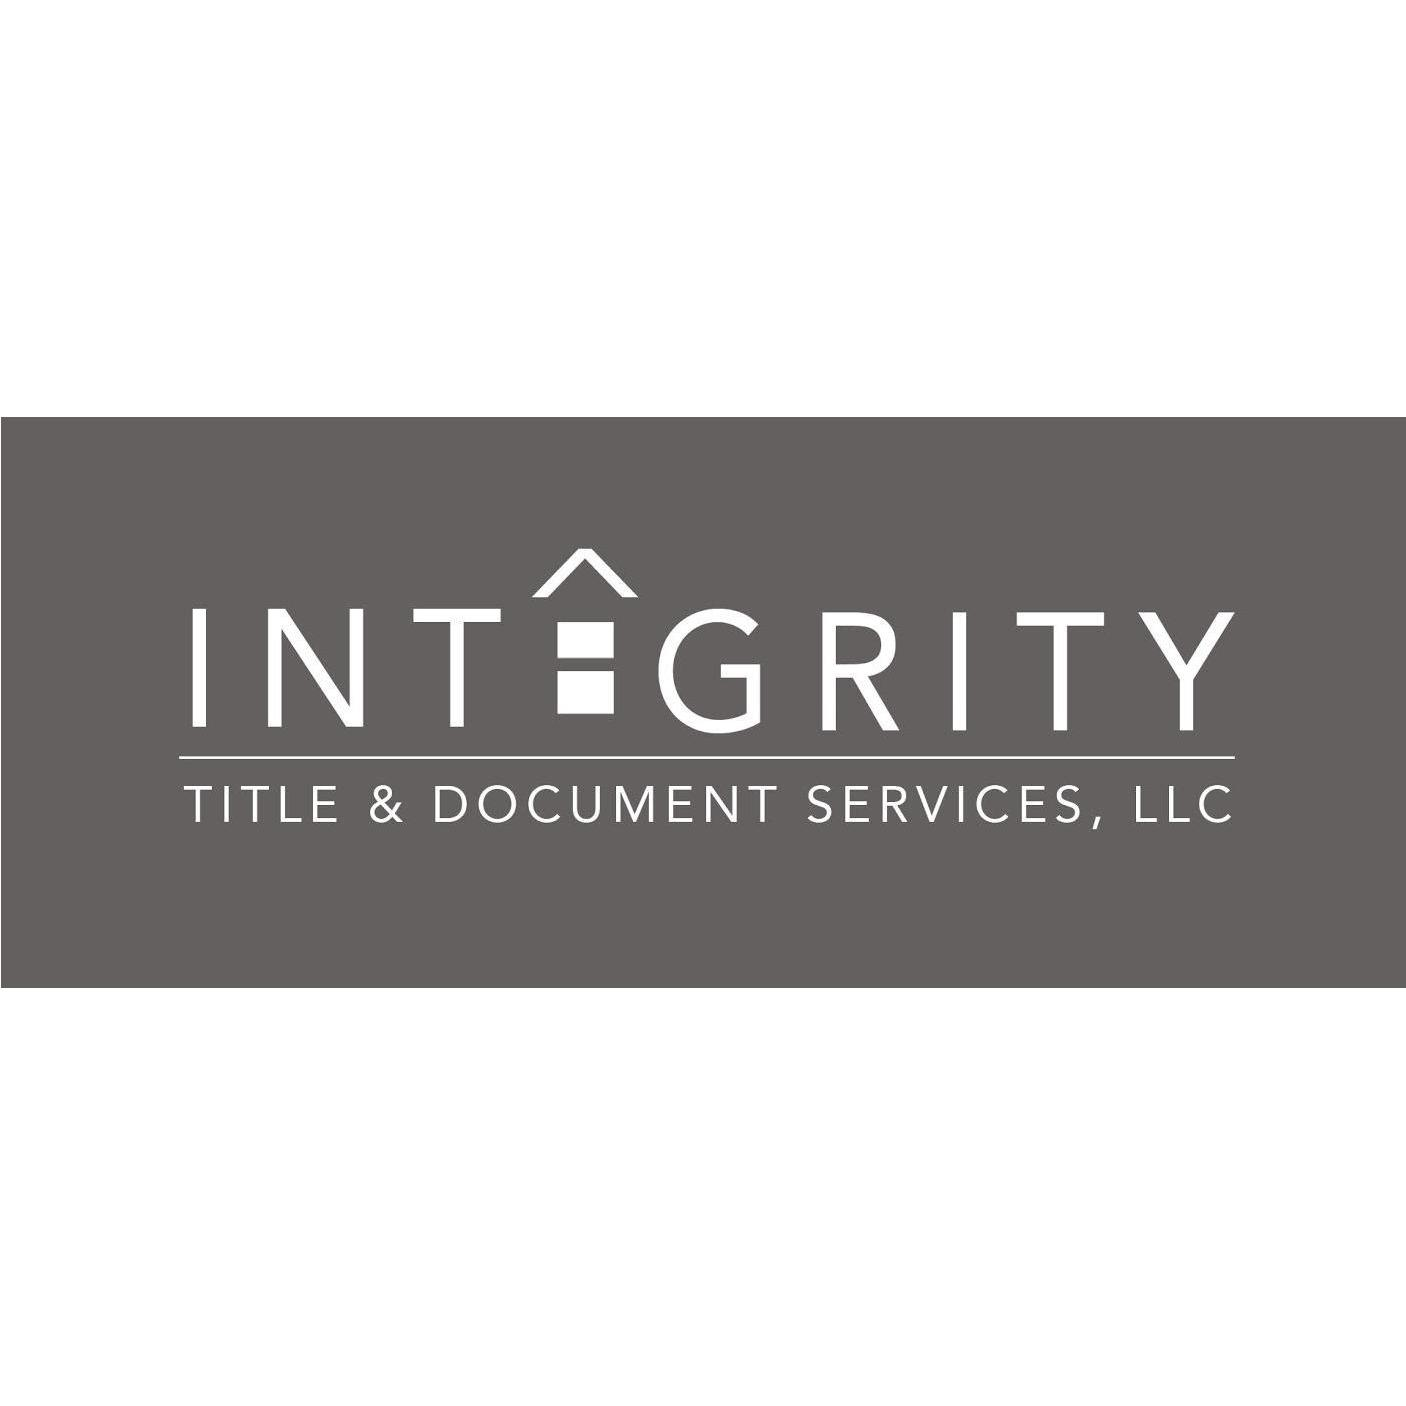 Integrity Title & Document Services, LLC